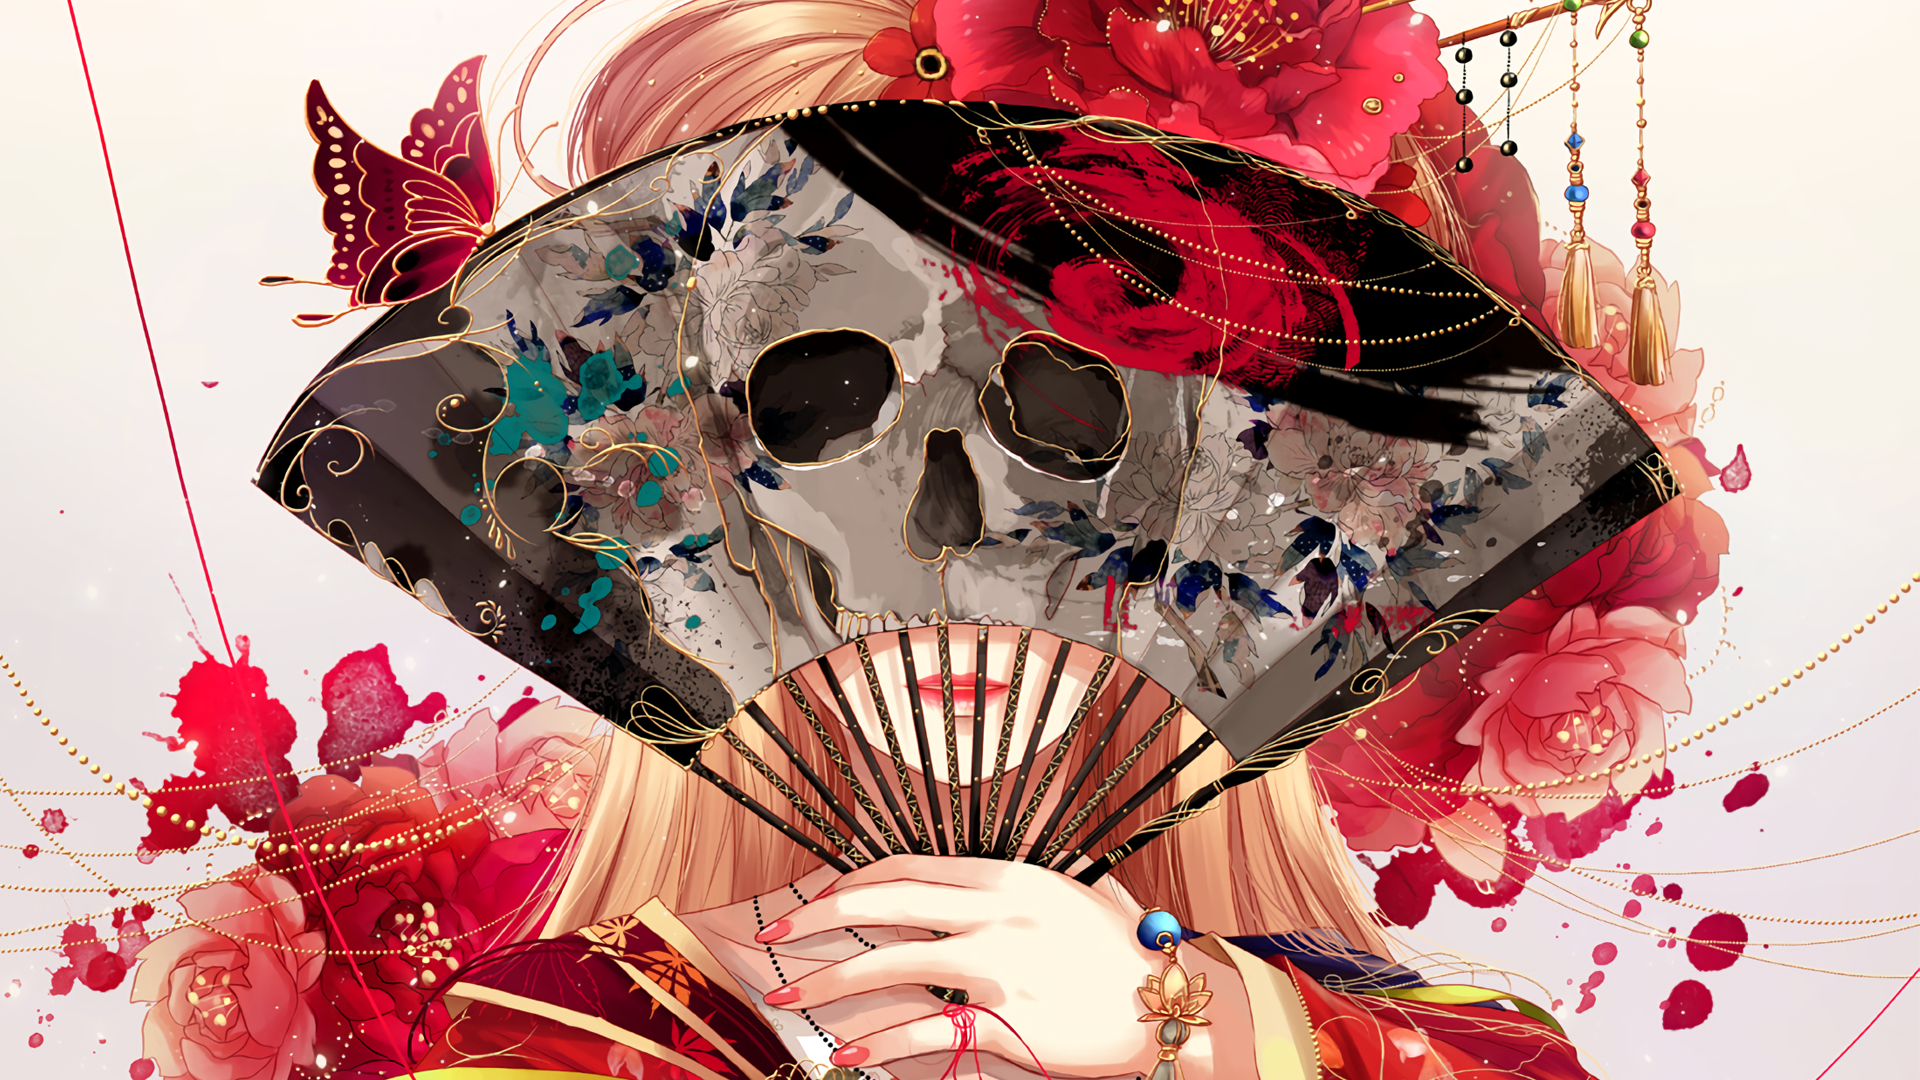 Anime - Original  Skull Flower Blonde Butterfly Original (Anime) Fan Girl Wallpaper